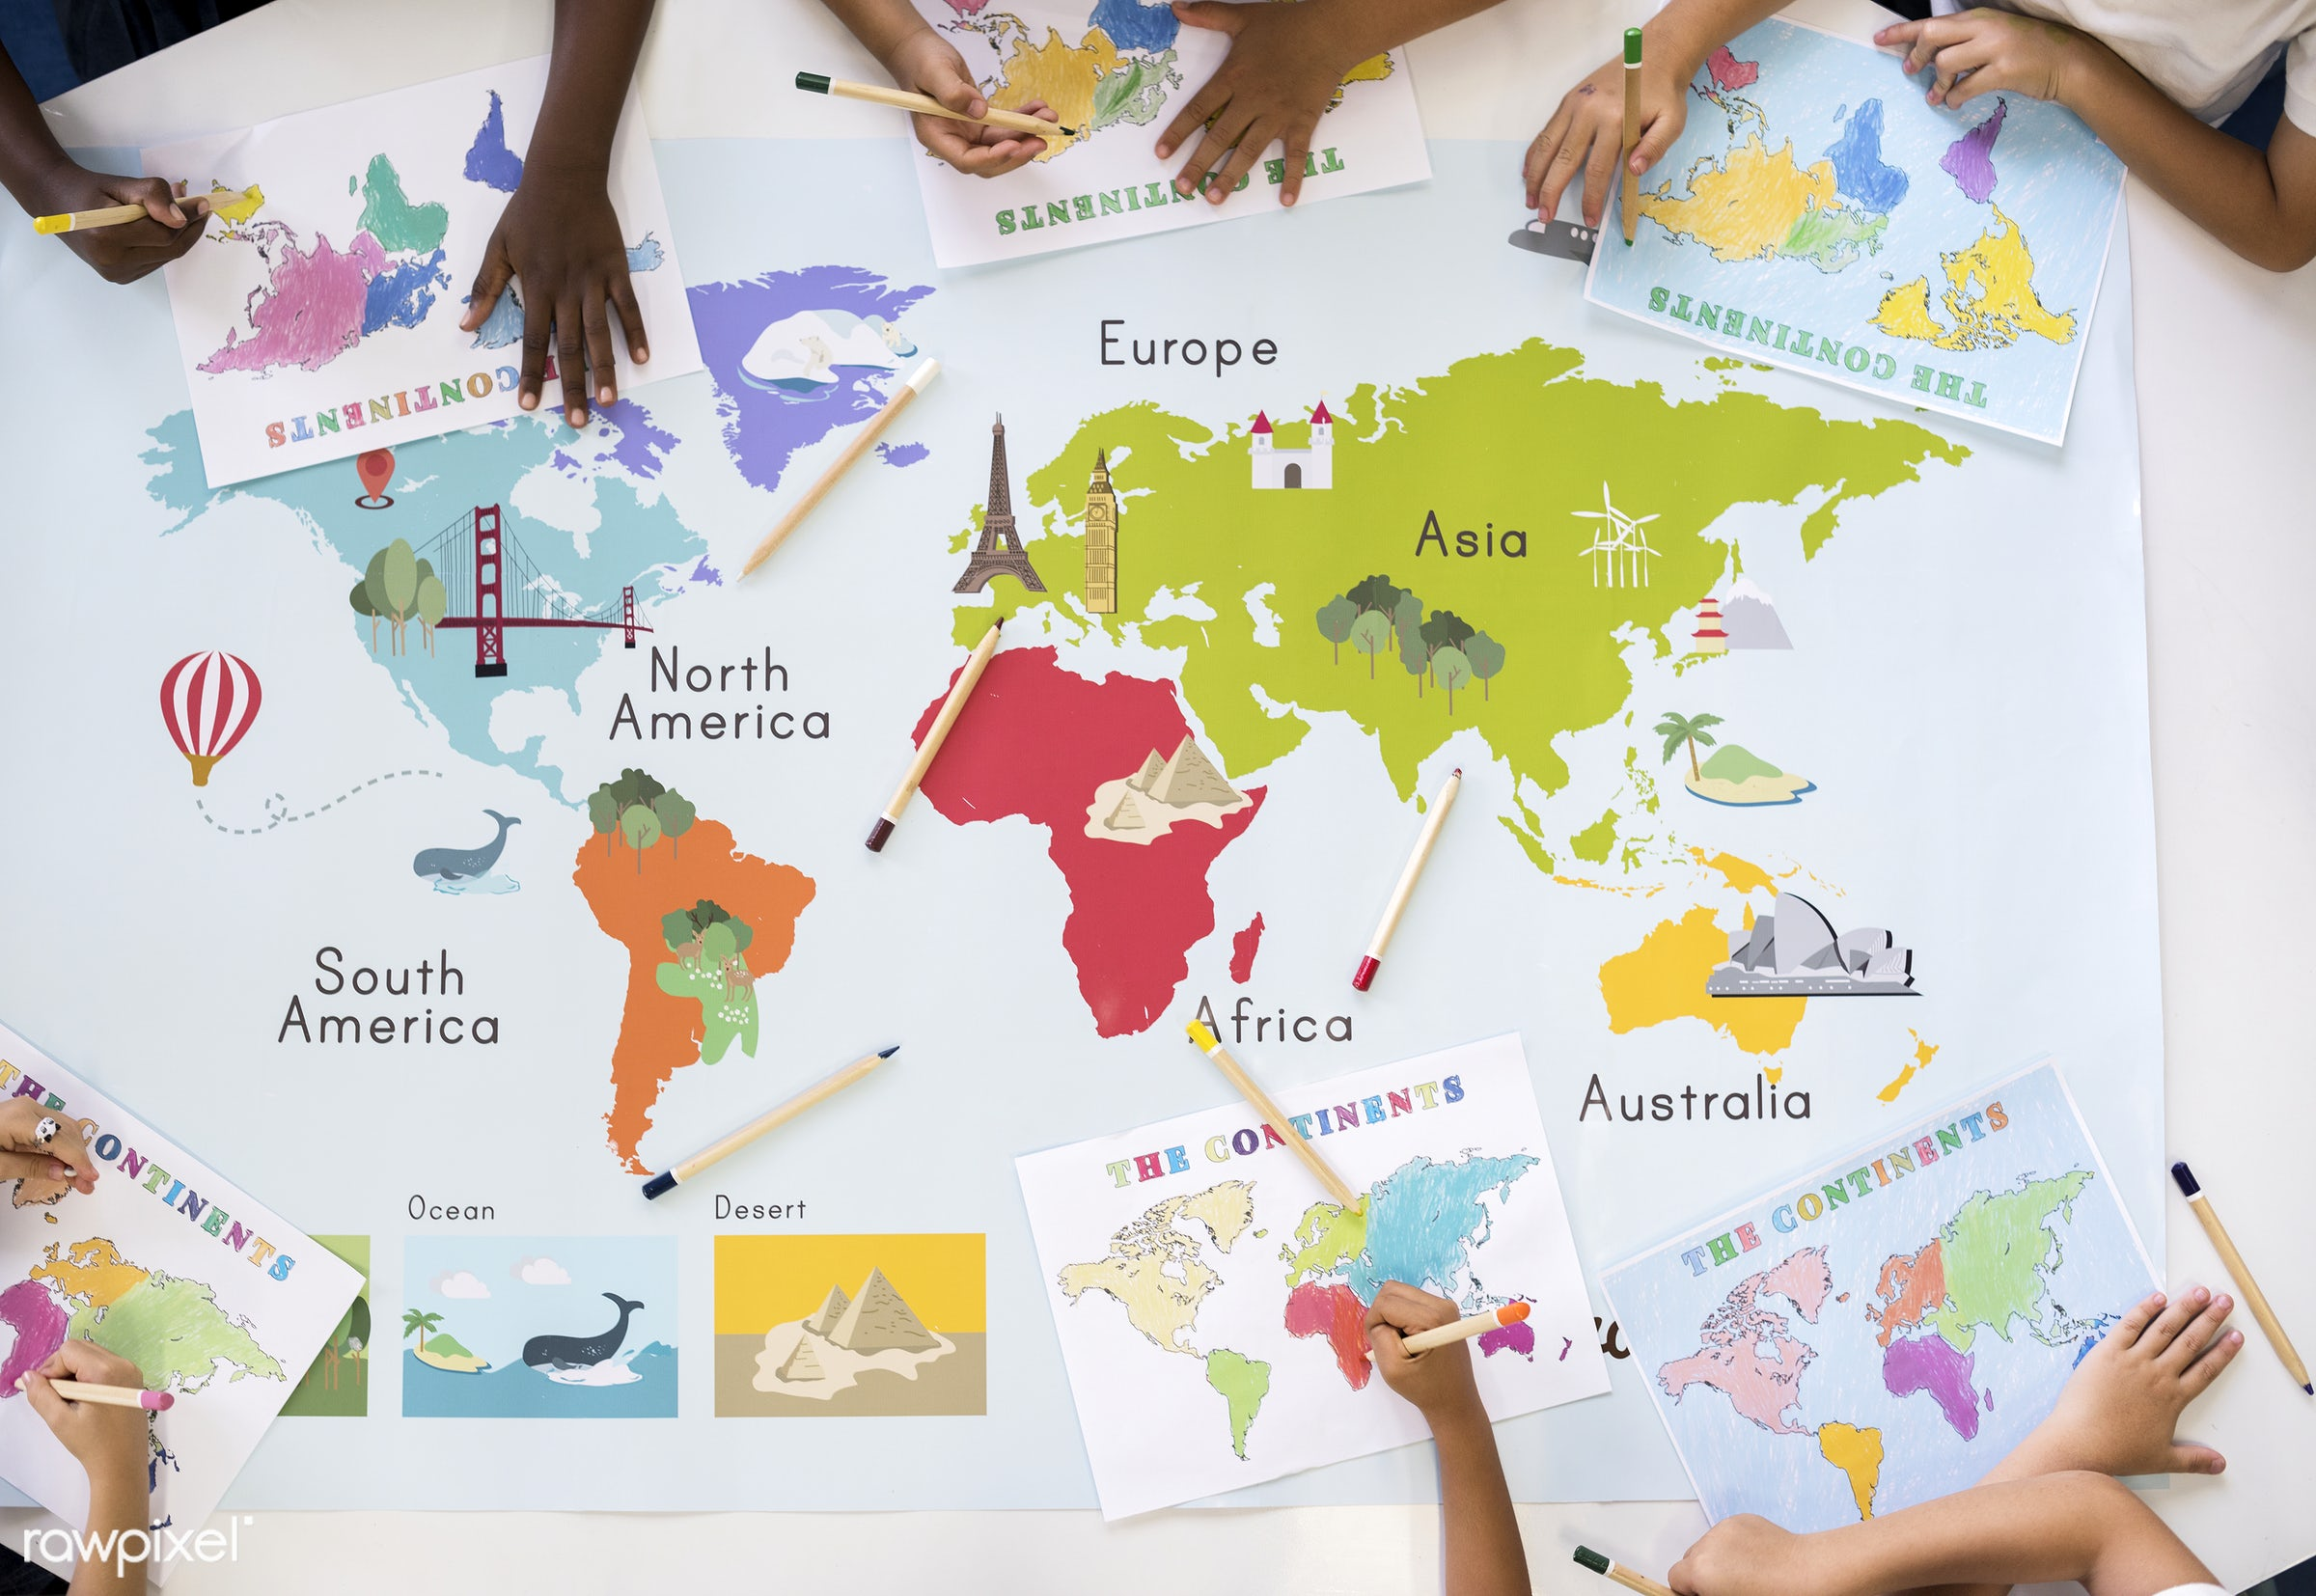 Happy kids at elementary school - lands, knowledge, flatlay, tag, ocean, study, education, countries, regions, colored...